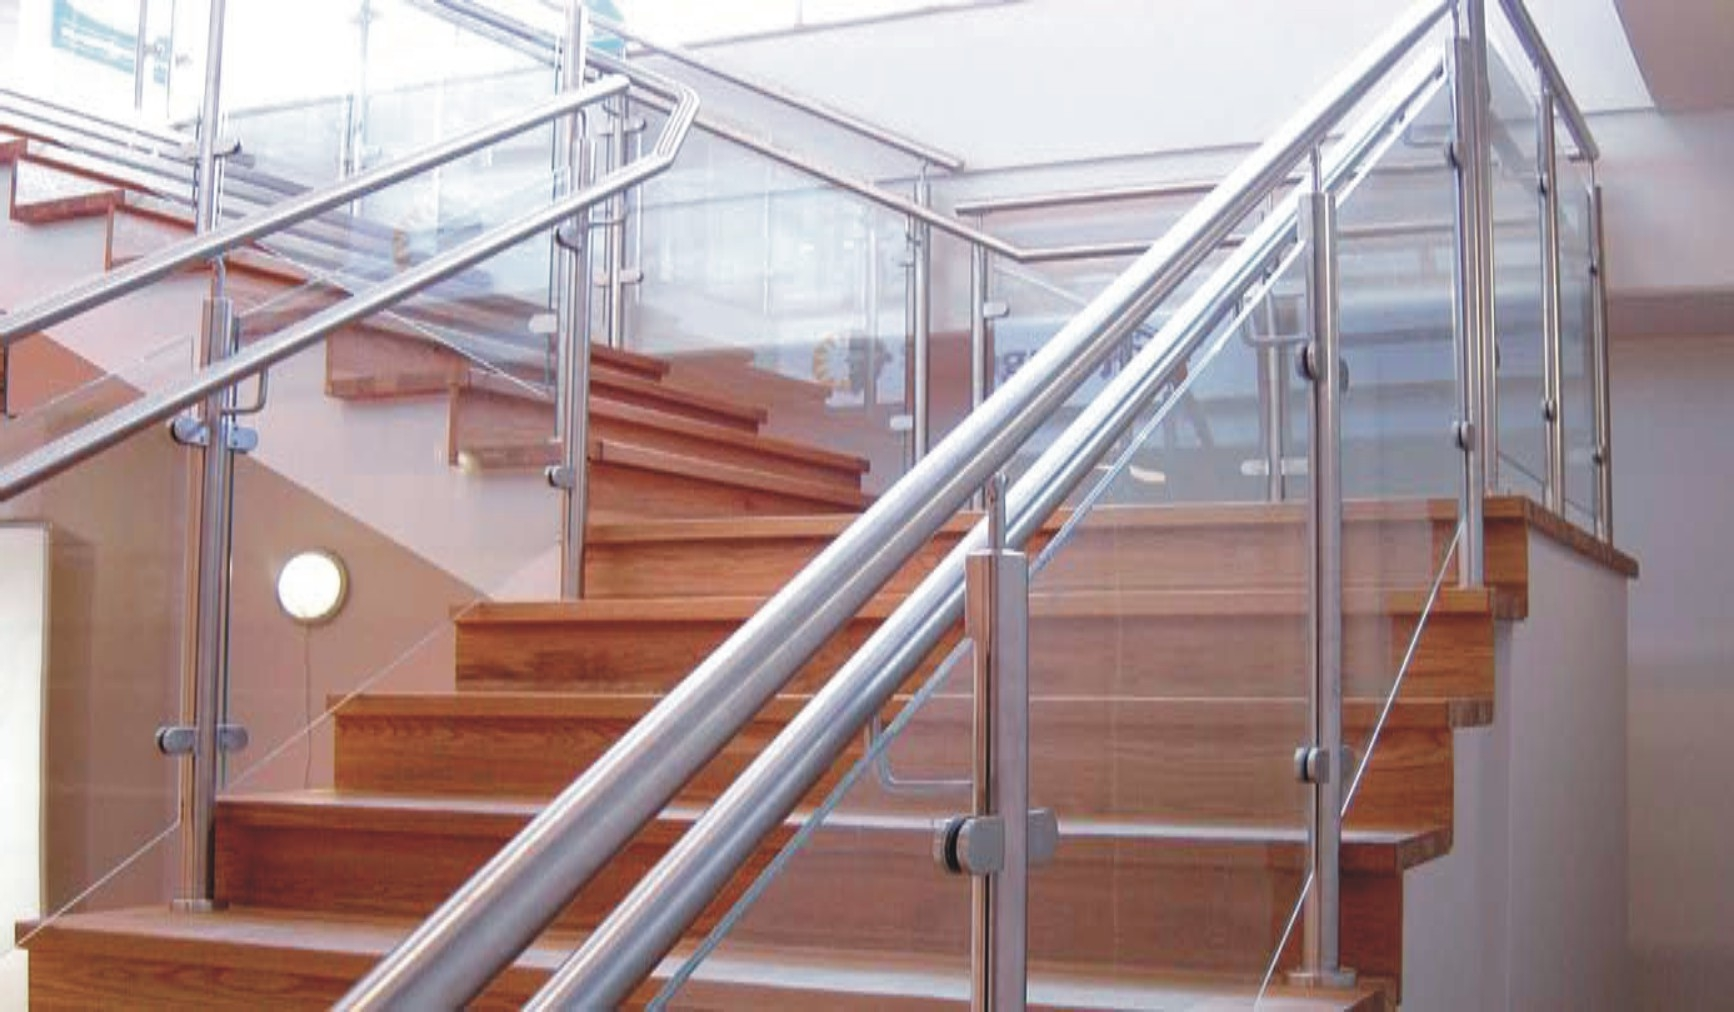 Handrail Fabrication – Woodmans Groups   Aluminium Handrails For Stairs   Outdoor   Plastic   Movable   Aluminum Oval Shaped   Vertical 6Mm Ss Rope Glass